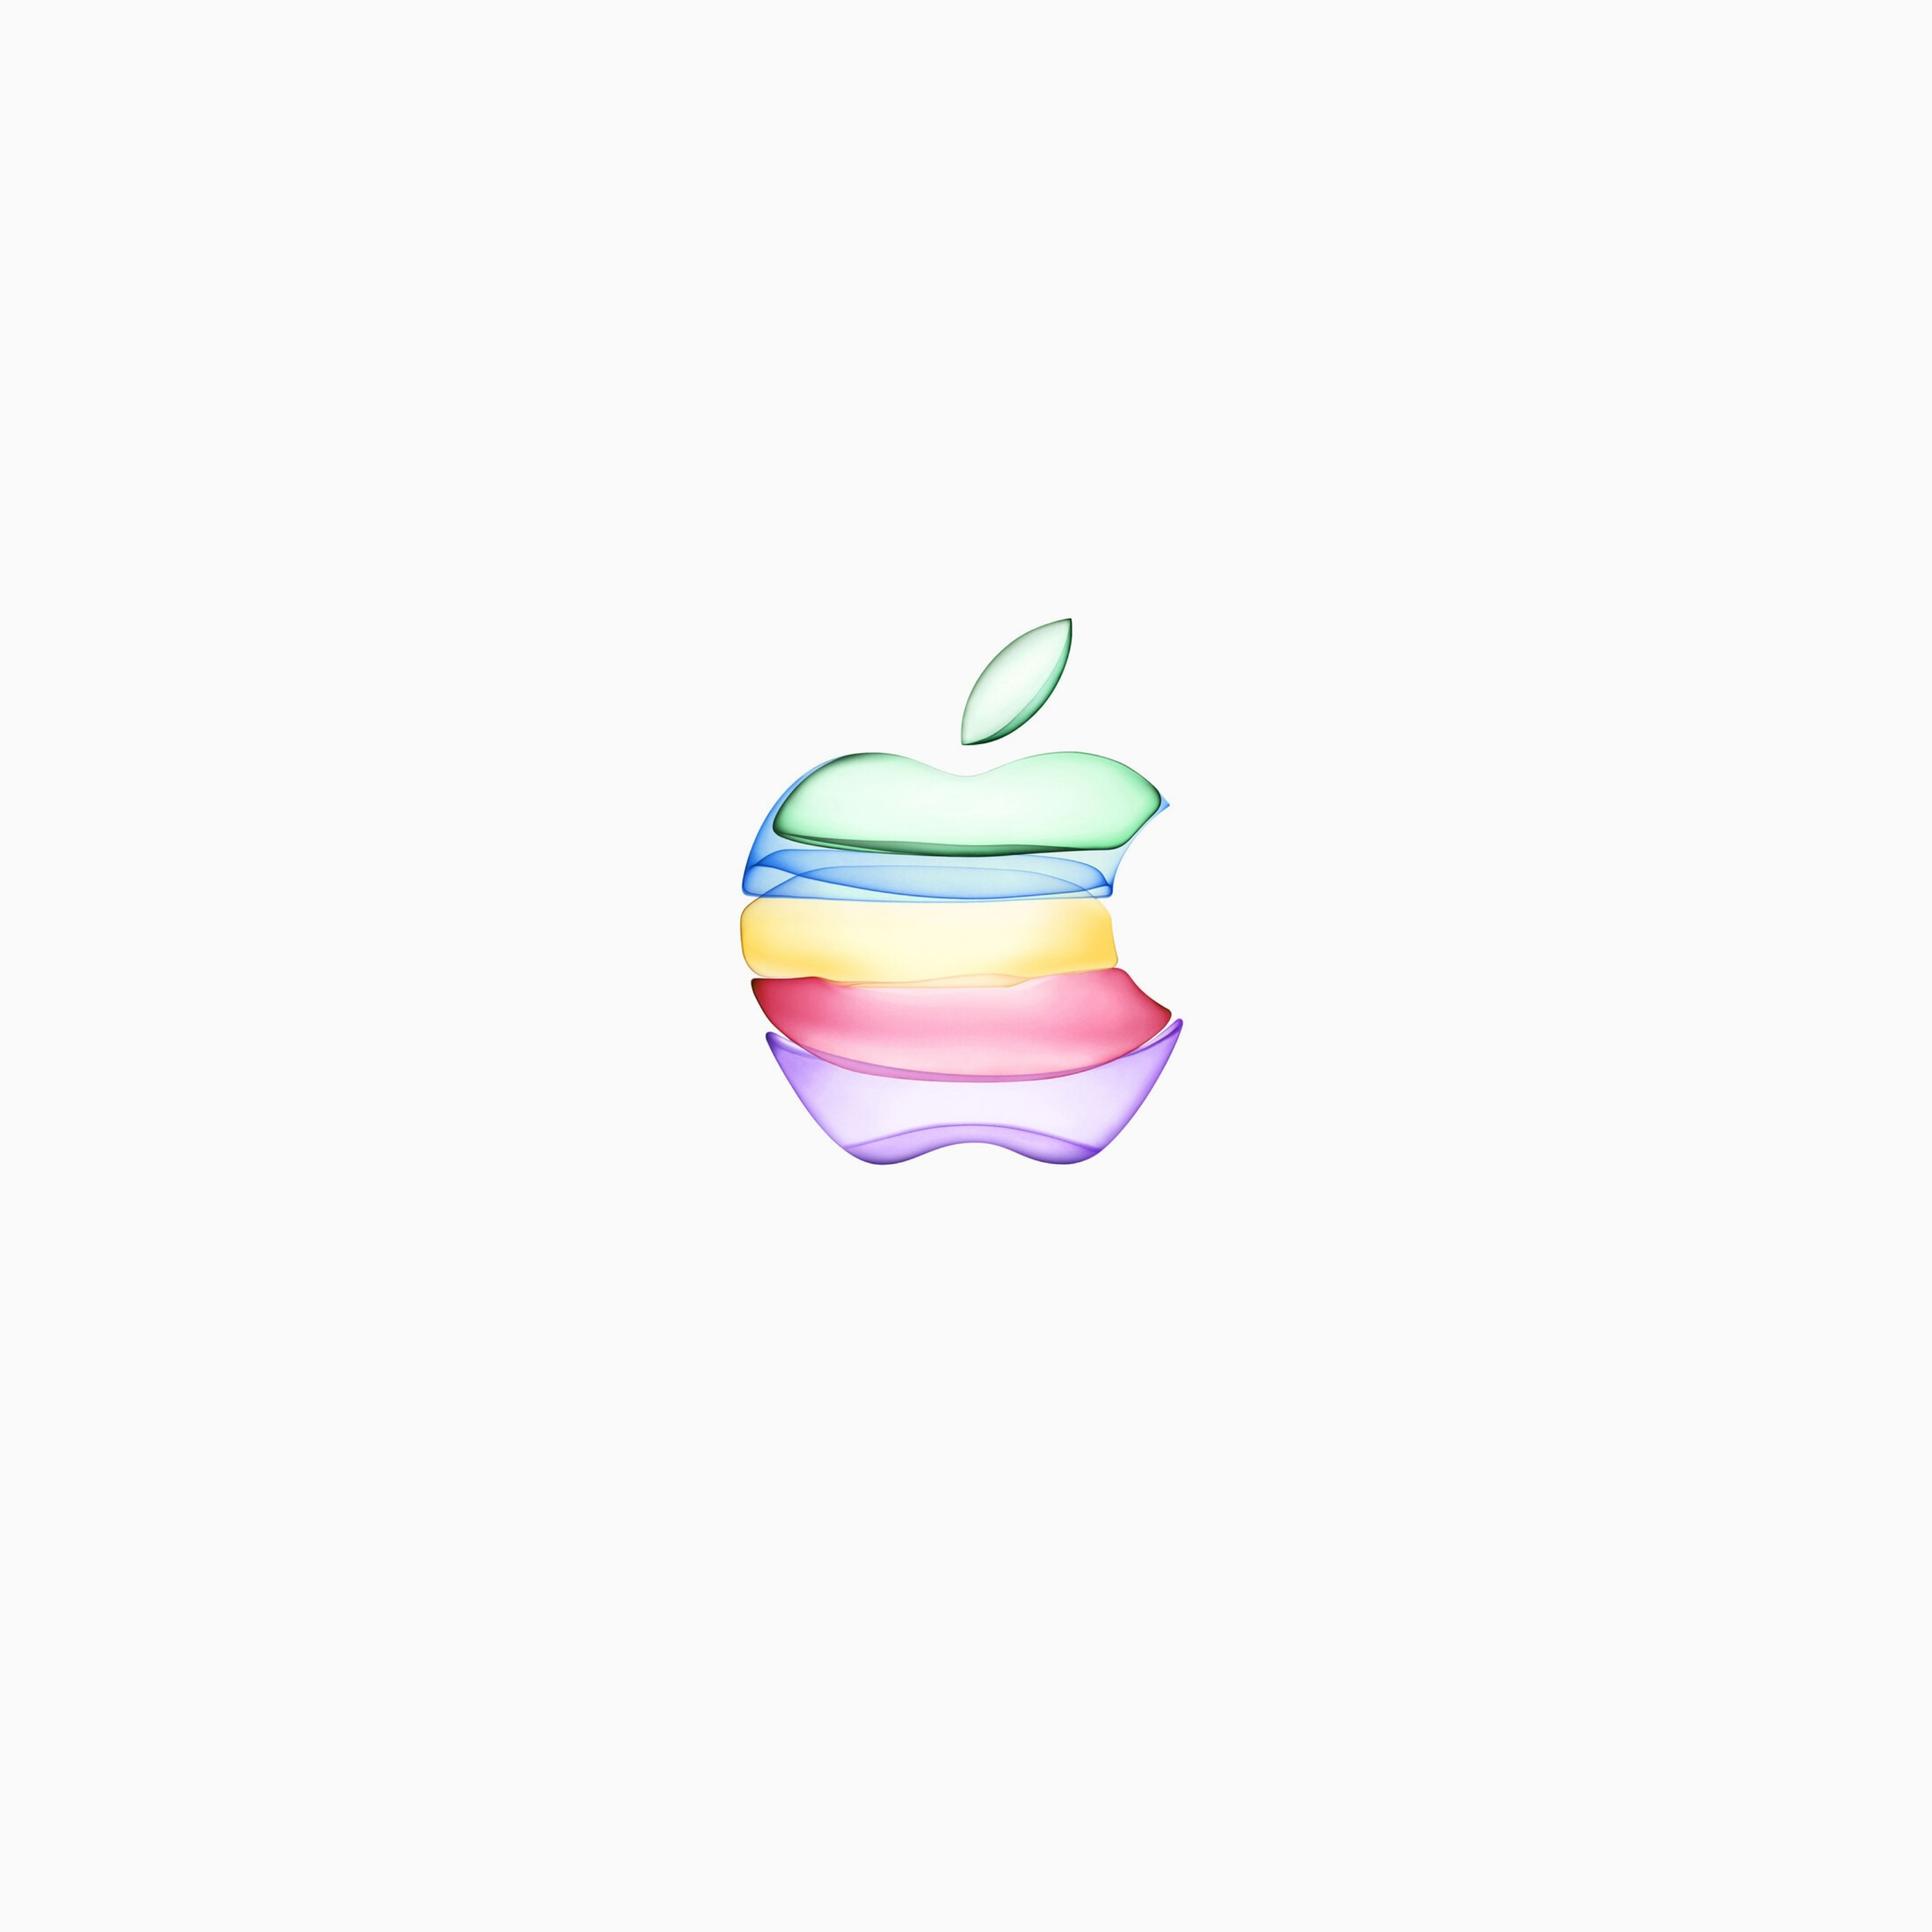 iPad Wallpapers iPhone 11 Apple Logo White Background iPad Wallpaper 3208x3208 px